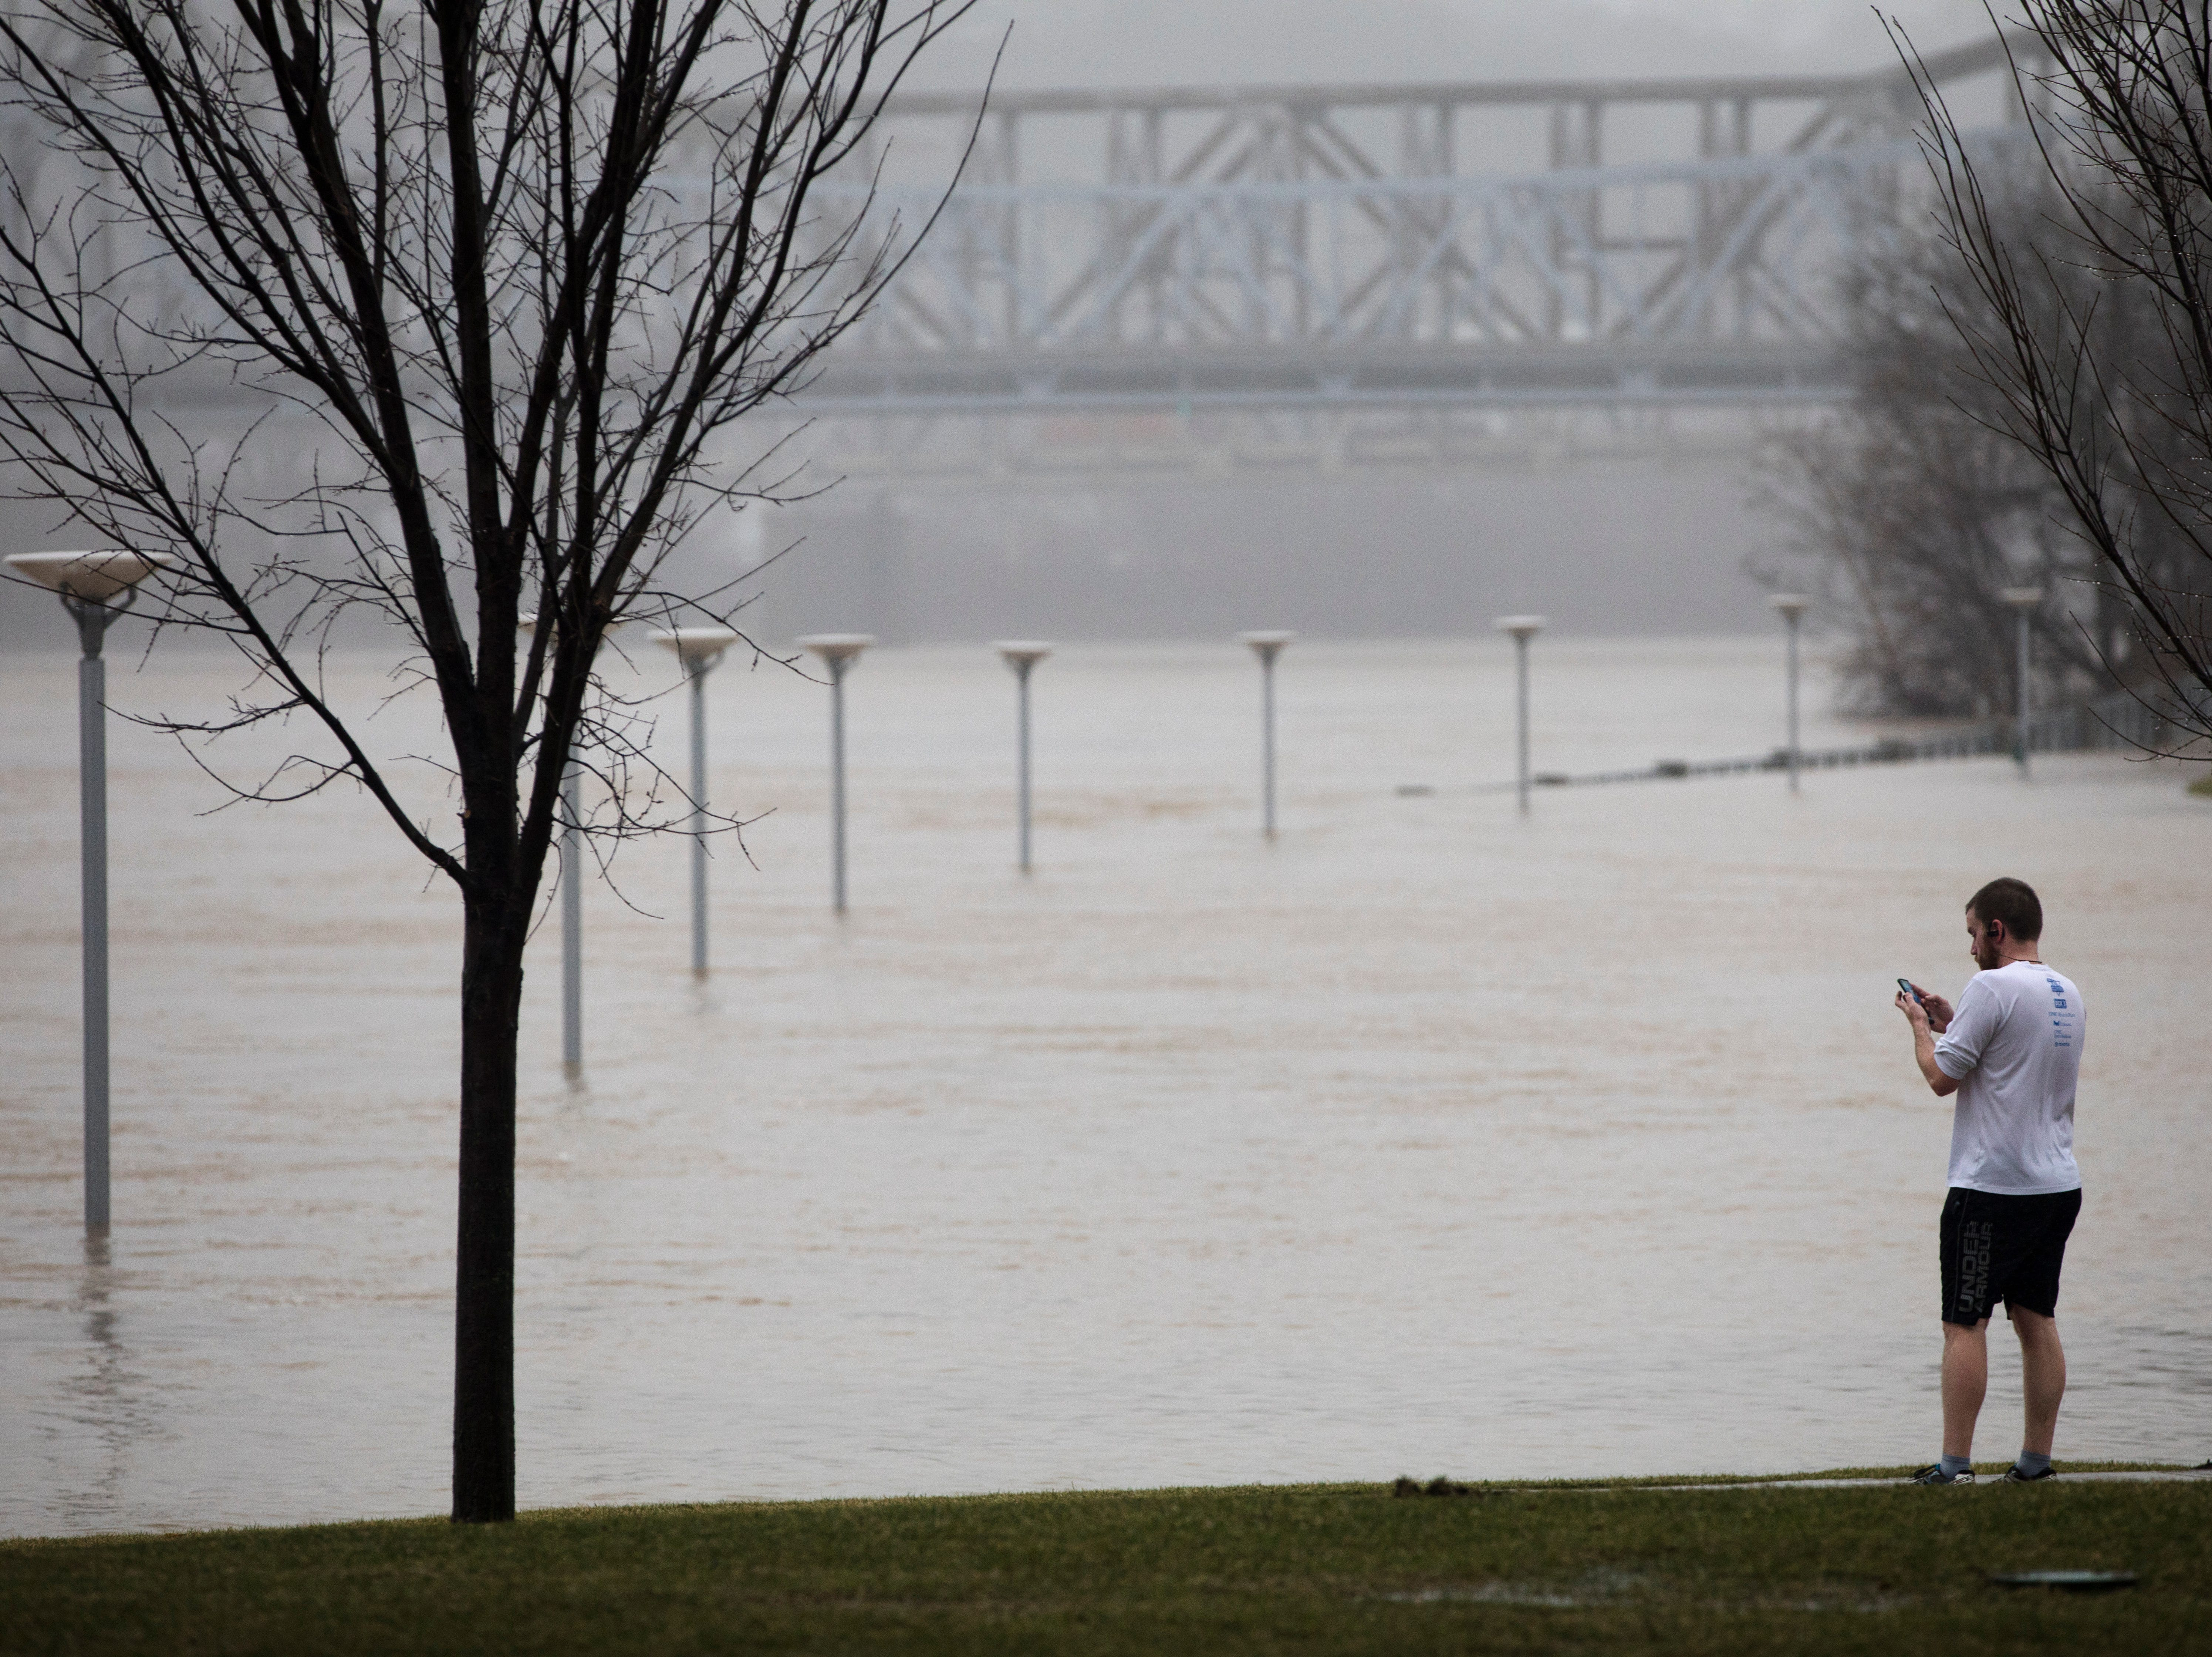 A runner stops to take a photograph at Smale Riverfront Park in Cincinnati on Tuesday, Feb. 12, 2019. The Ohio River is expected to crest at 56.3 feet at 1 a.m. Wednesday, Feb. 13.